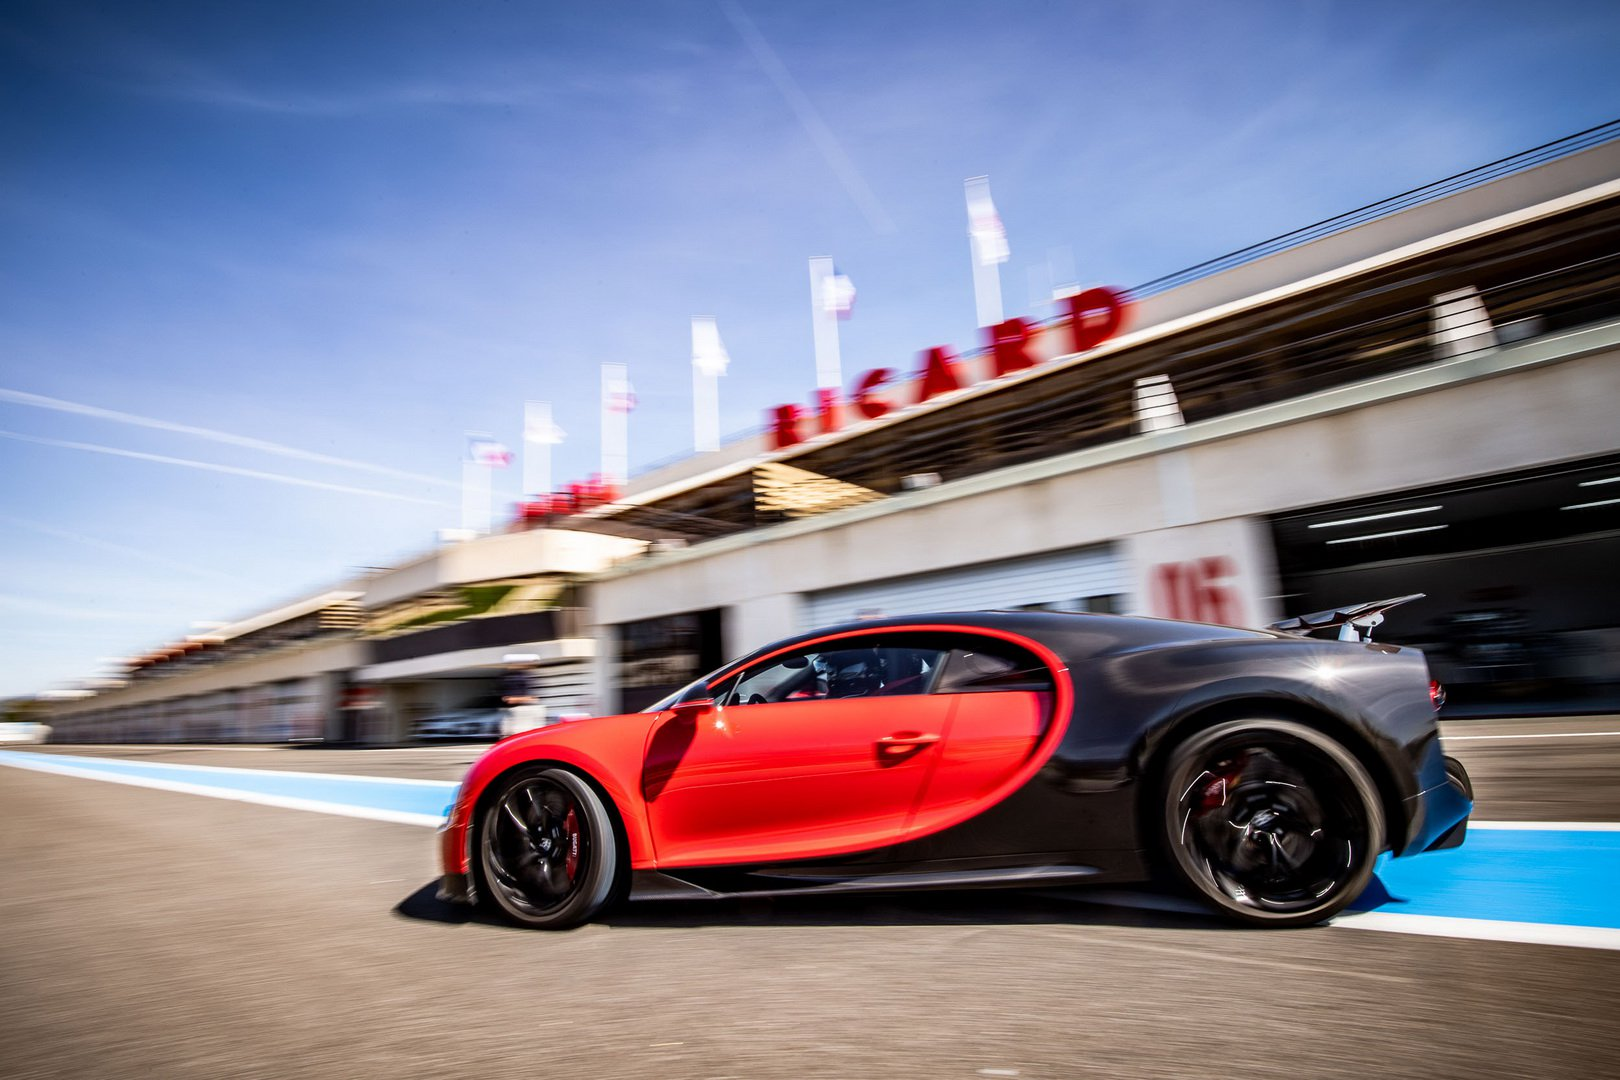 Bugatti-Chiron-and-Chiron-Sport-at-Paul-Ricard-Circuit-6